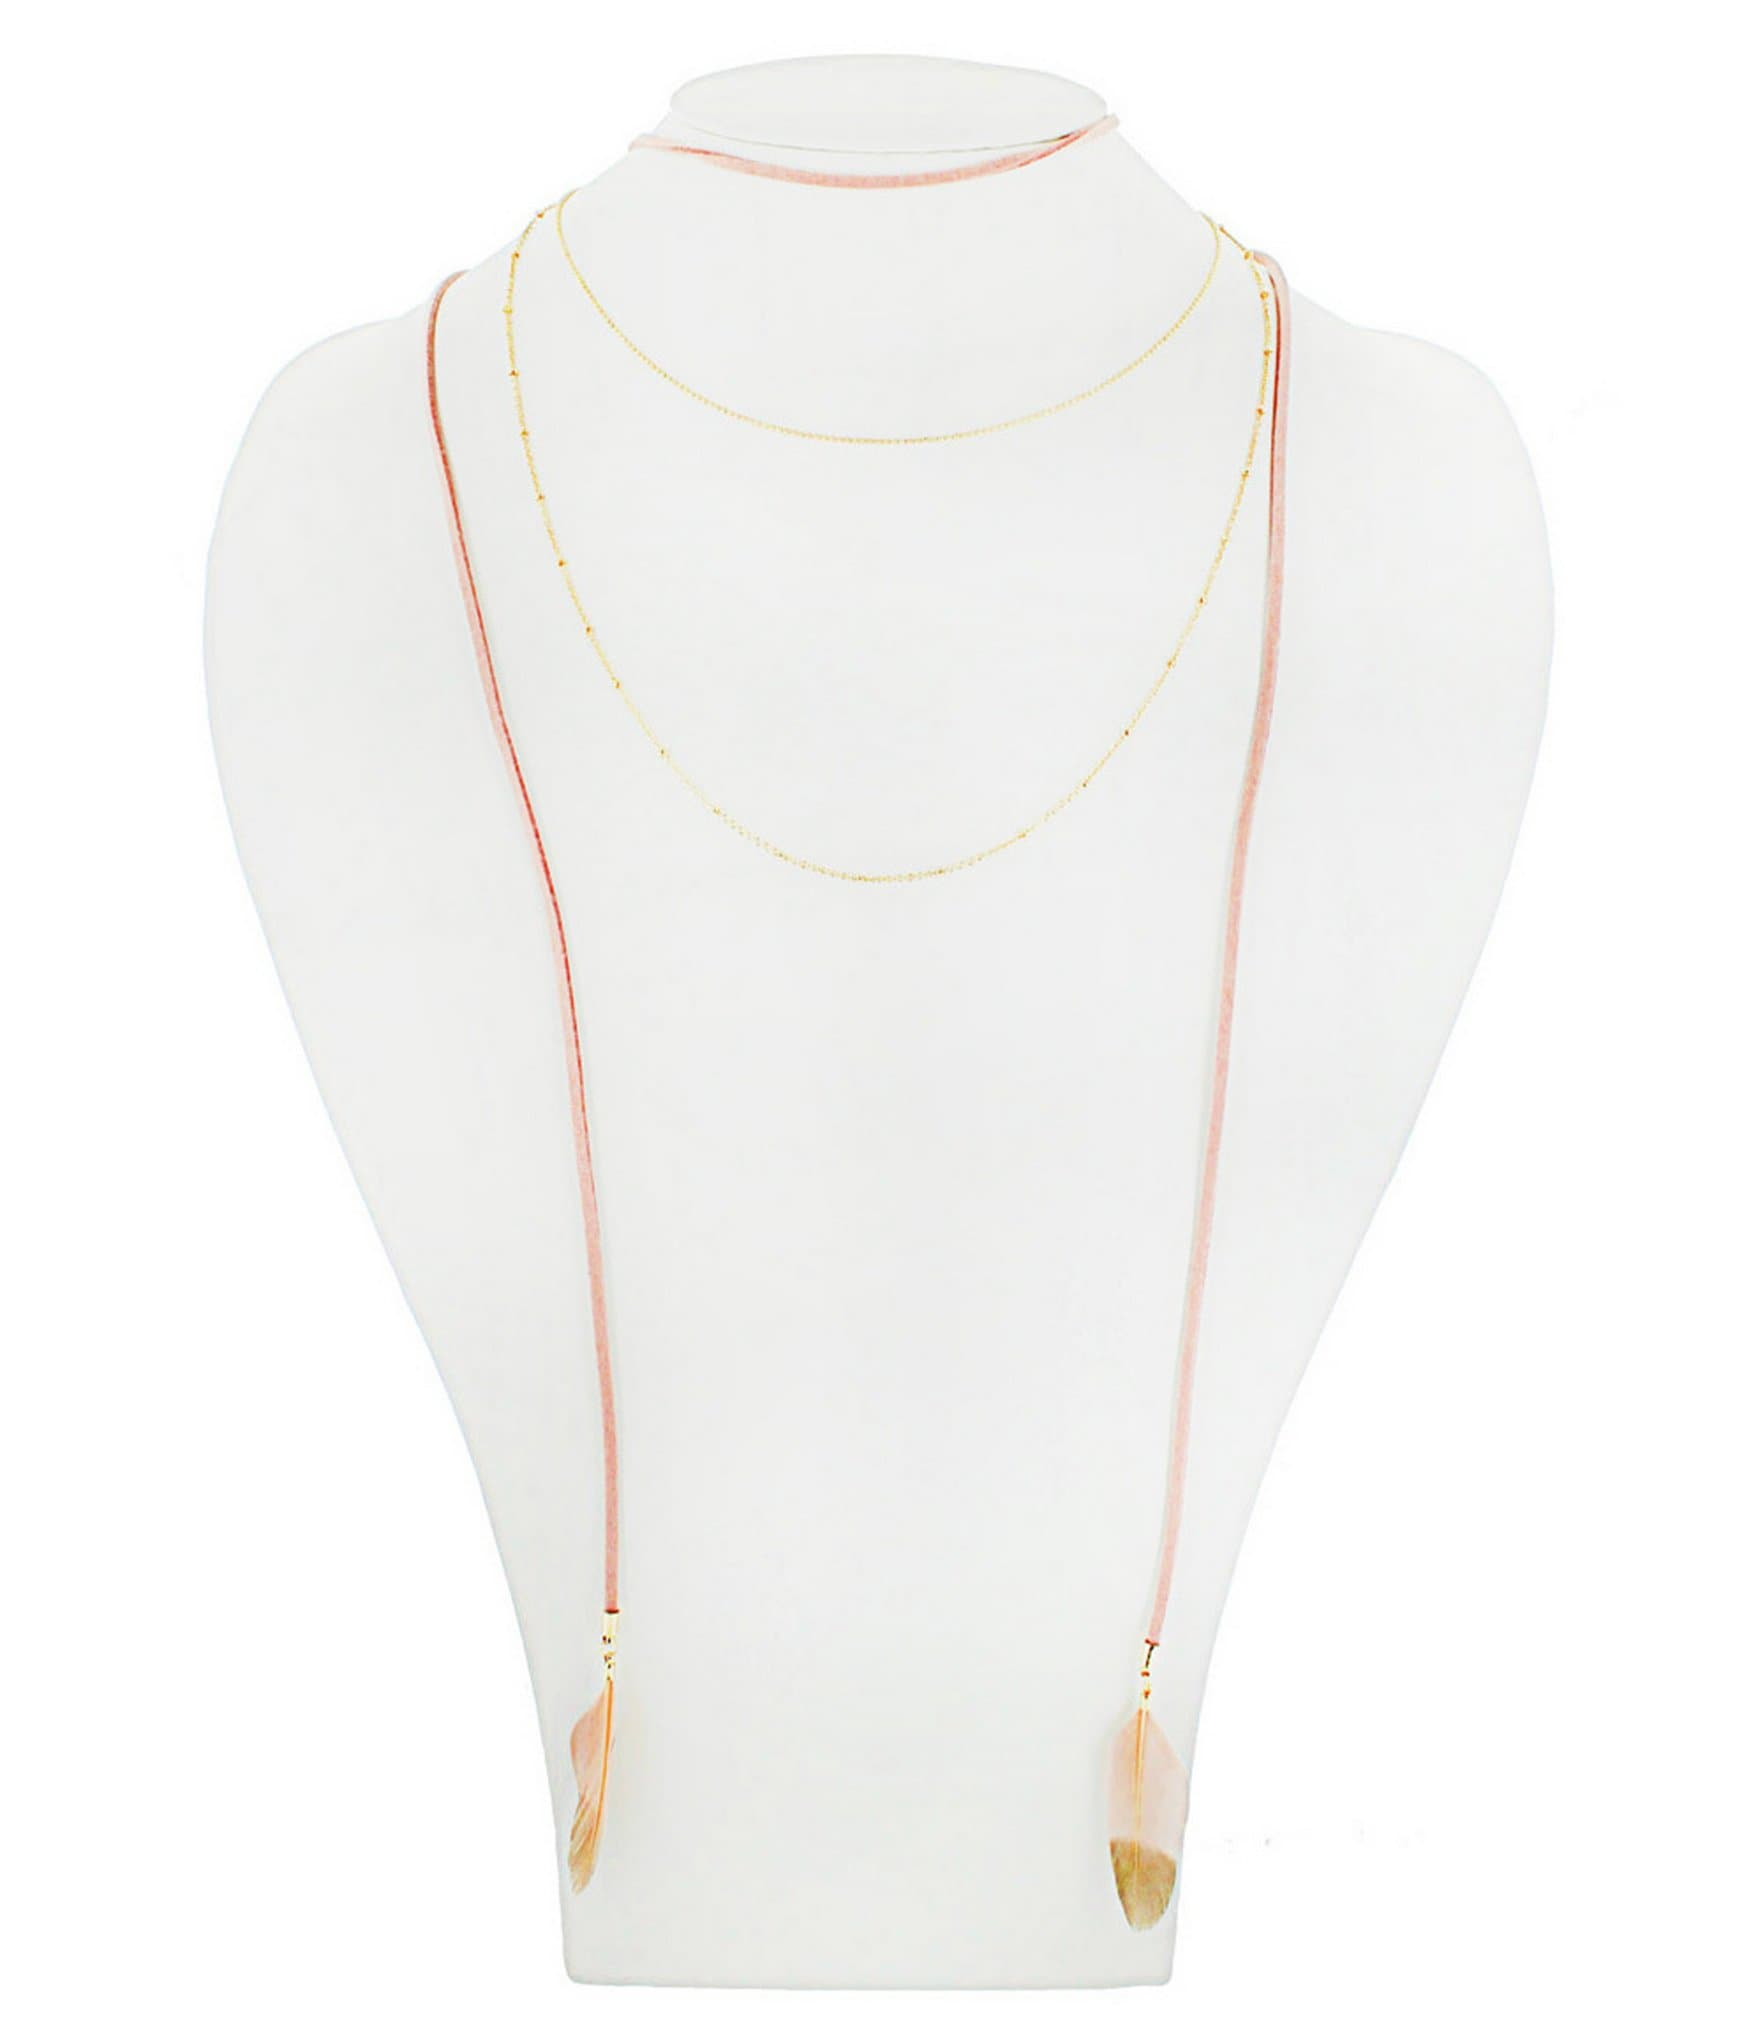 panacea single men Top sale panacea fringe pendant necklace, stylish women's clothing by venus®, shop great dresses, tops, sweater, leggings, lingerie & more online or chat with a.